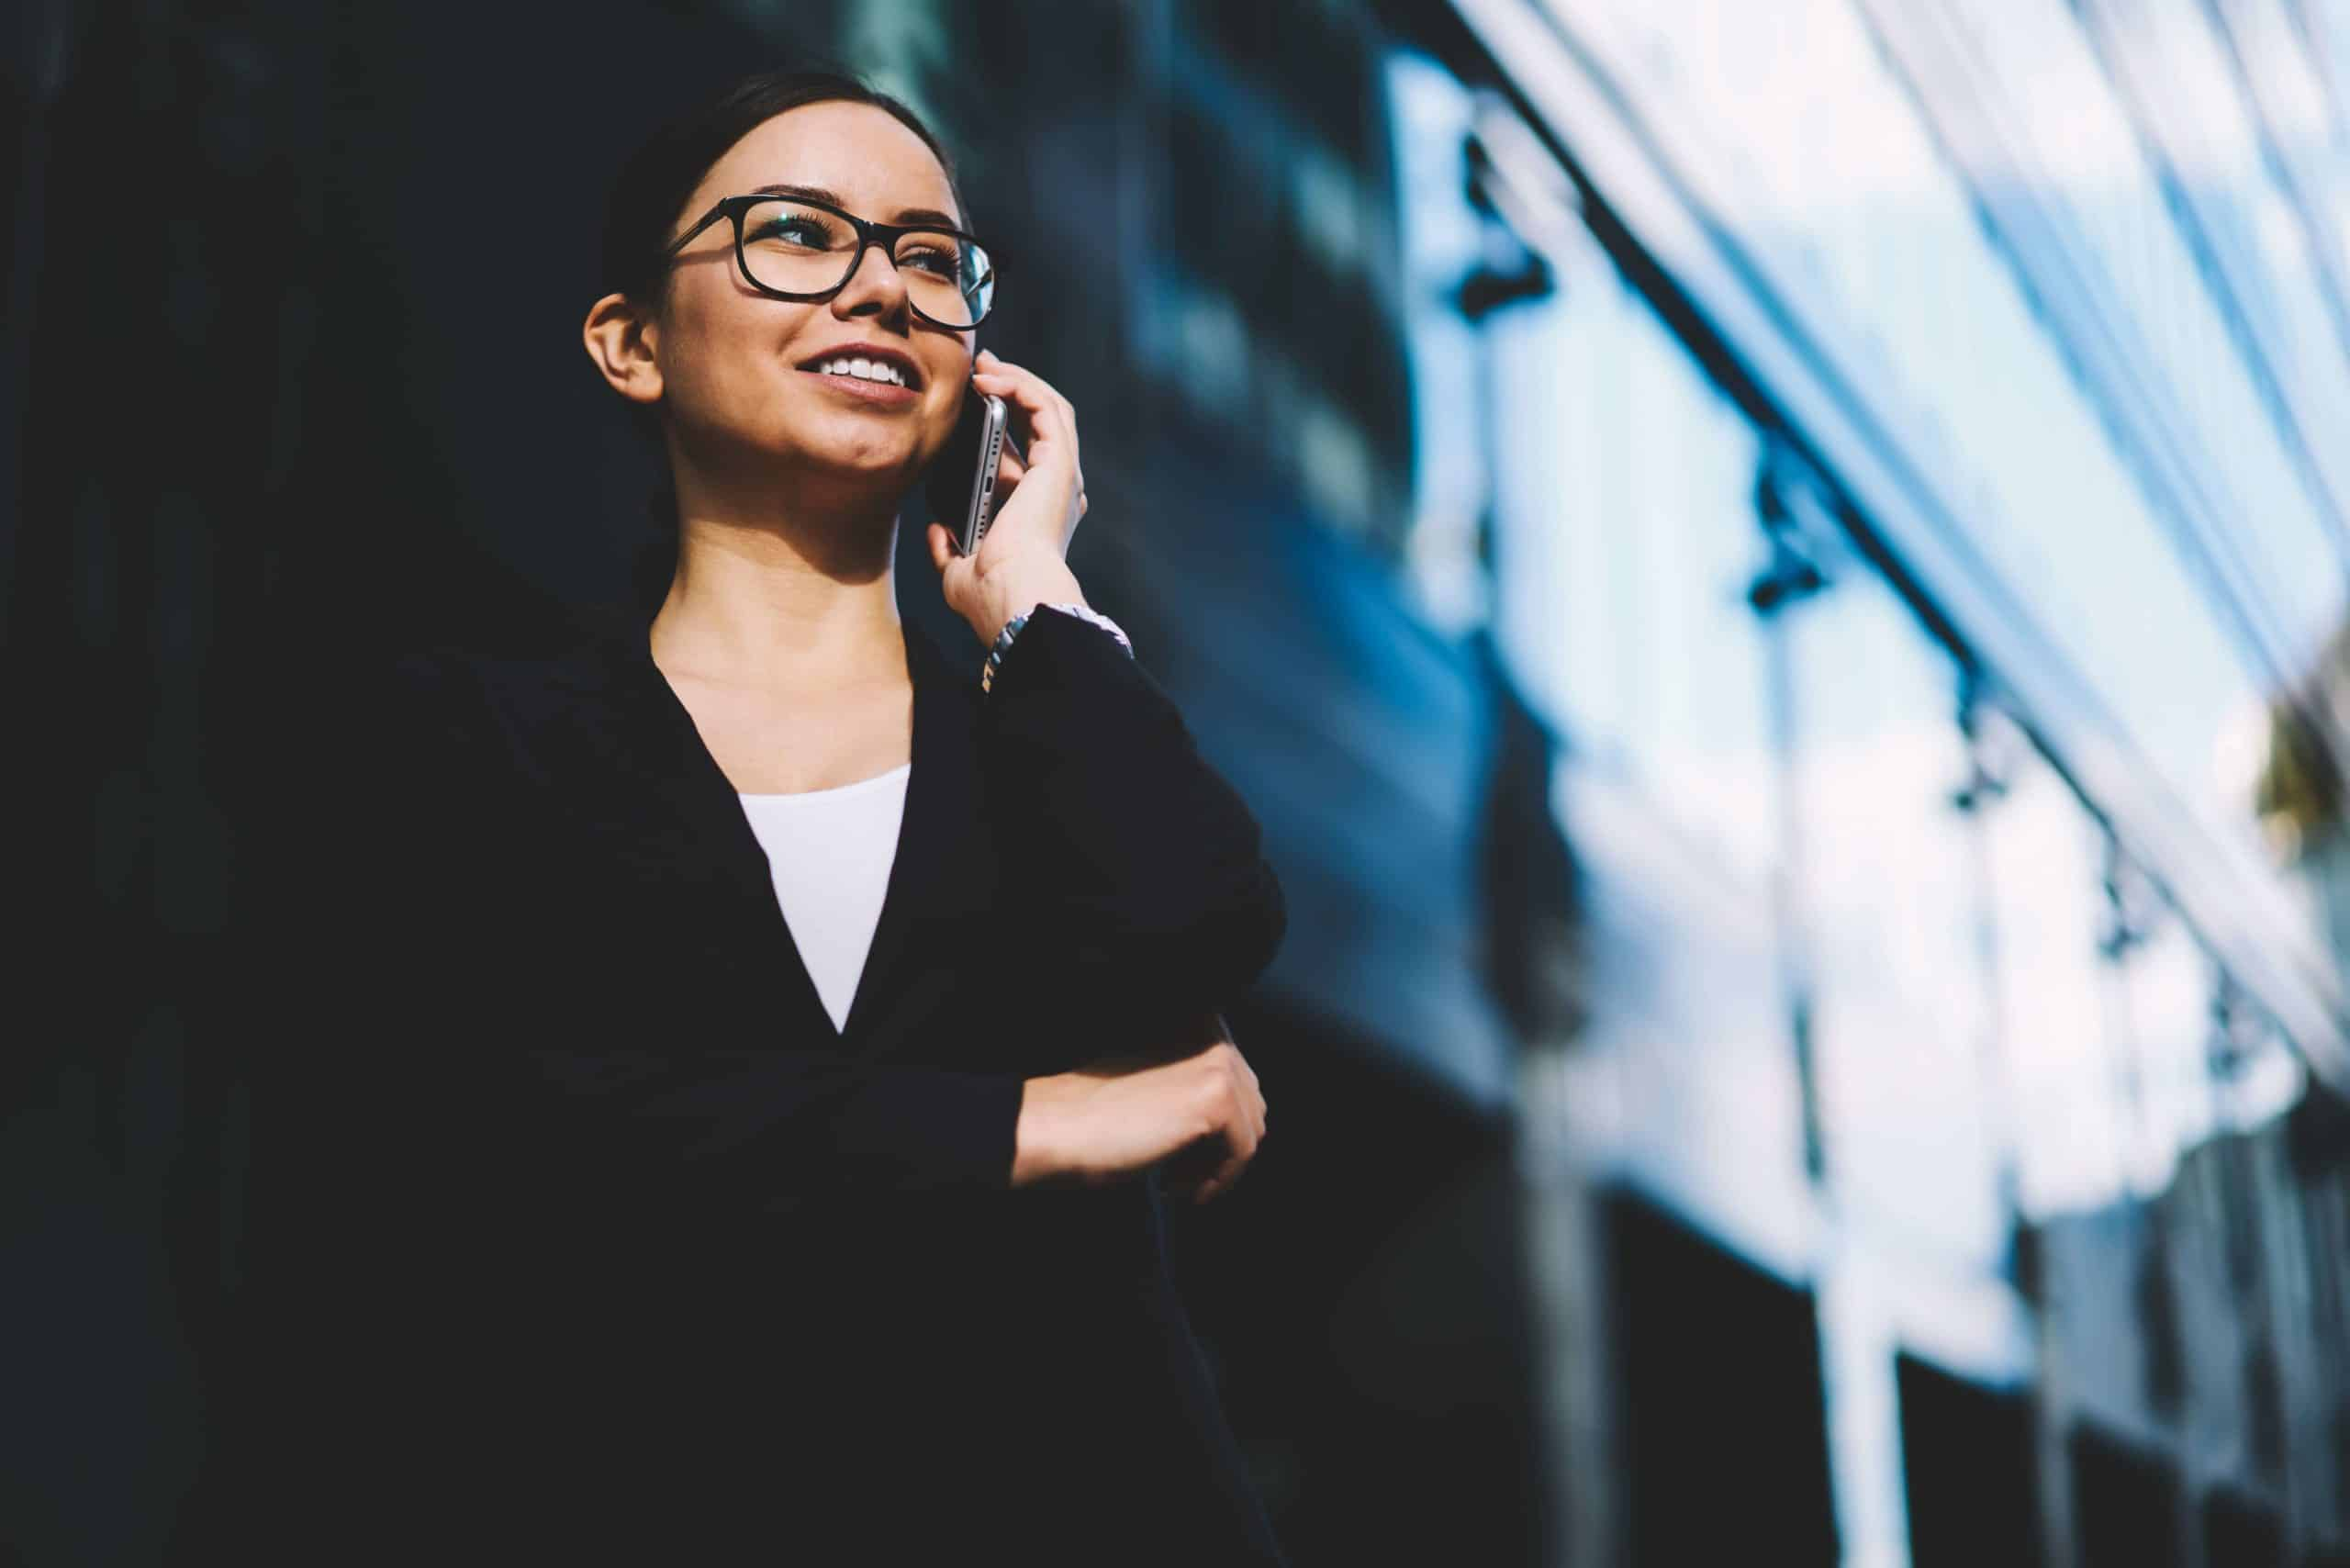 Prosperous businesswoman in eyeglasses and stylish black suit smiling during mobile conversation on modern smartphone standing outdoors near office building.Copy space area for financial information